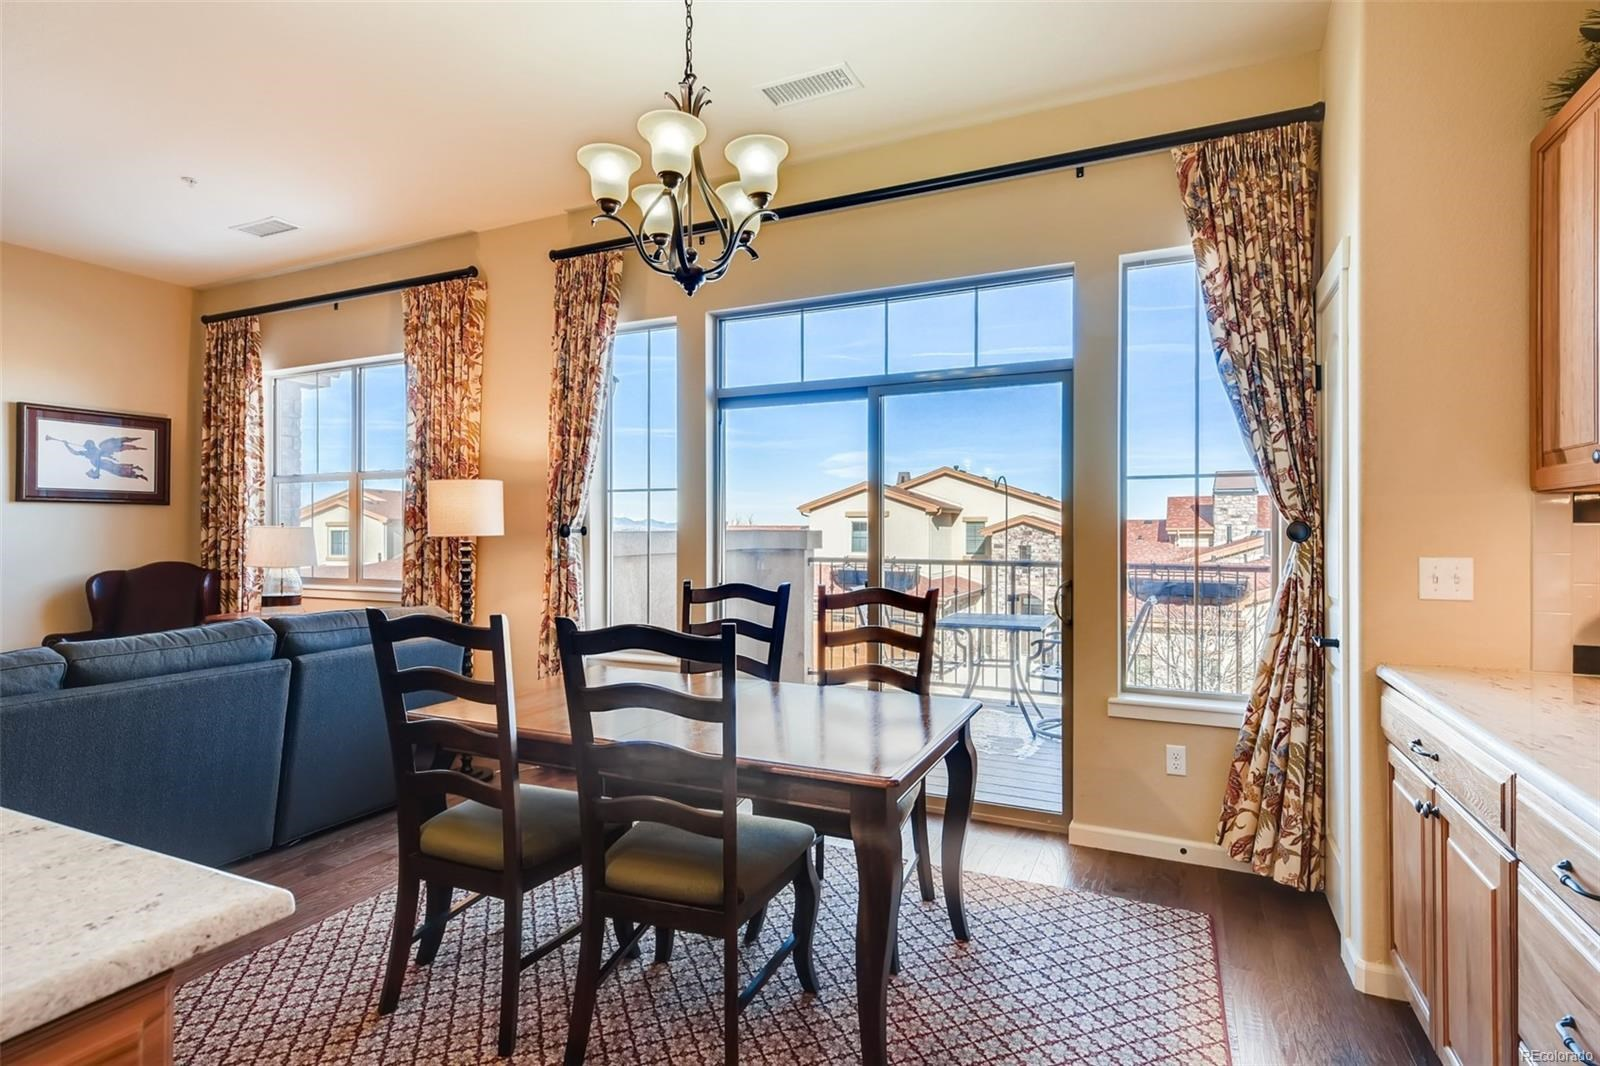 MLS# 6336333 - 11 - 2262 Primo Road #205, Highlands Ranch, CO 80129